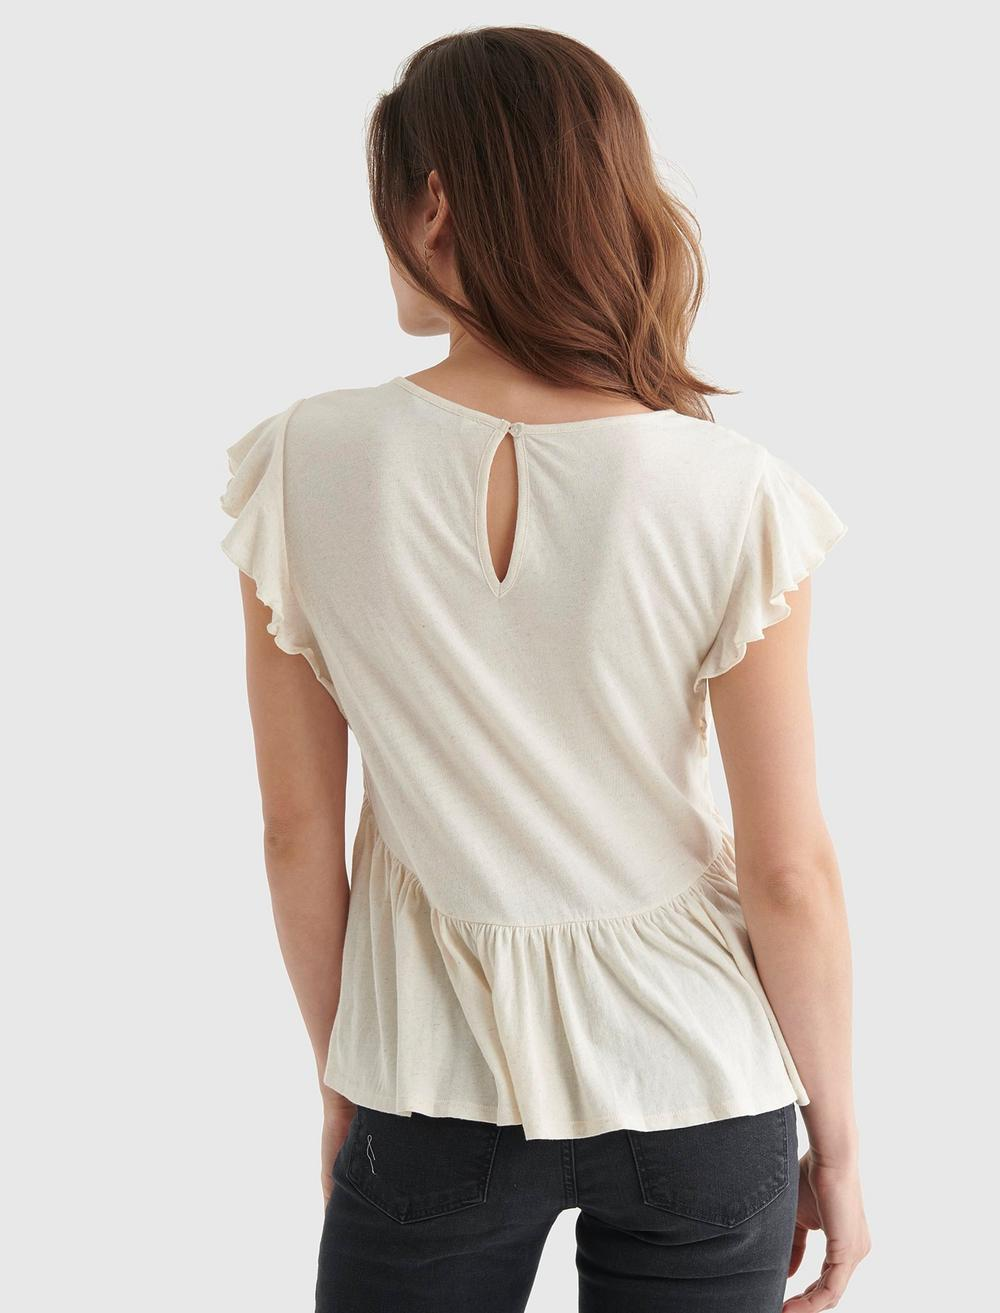 SHORT SLEEVE EMBROIDERED DOLMAN TOP, image 5